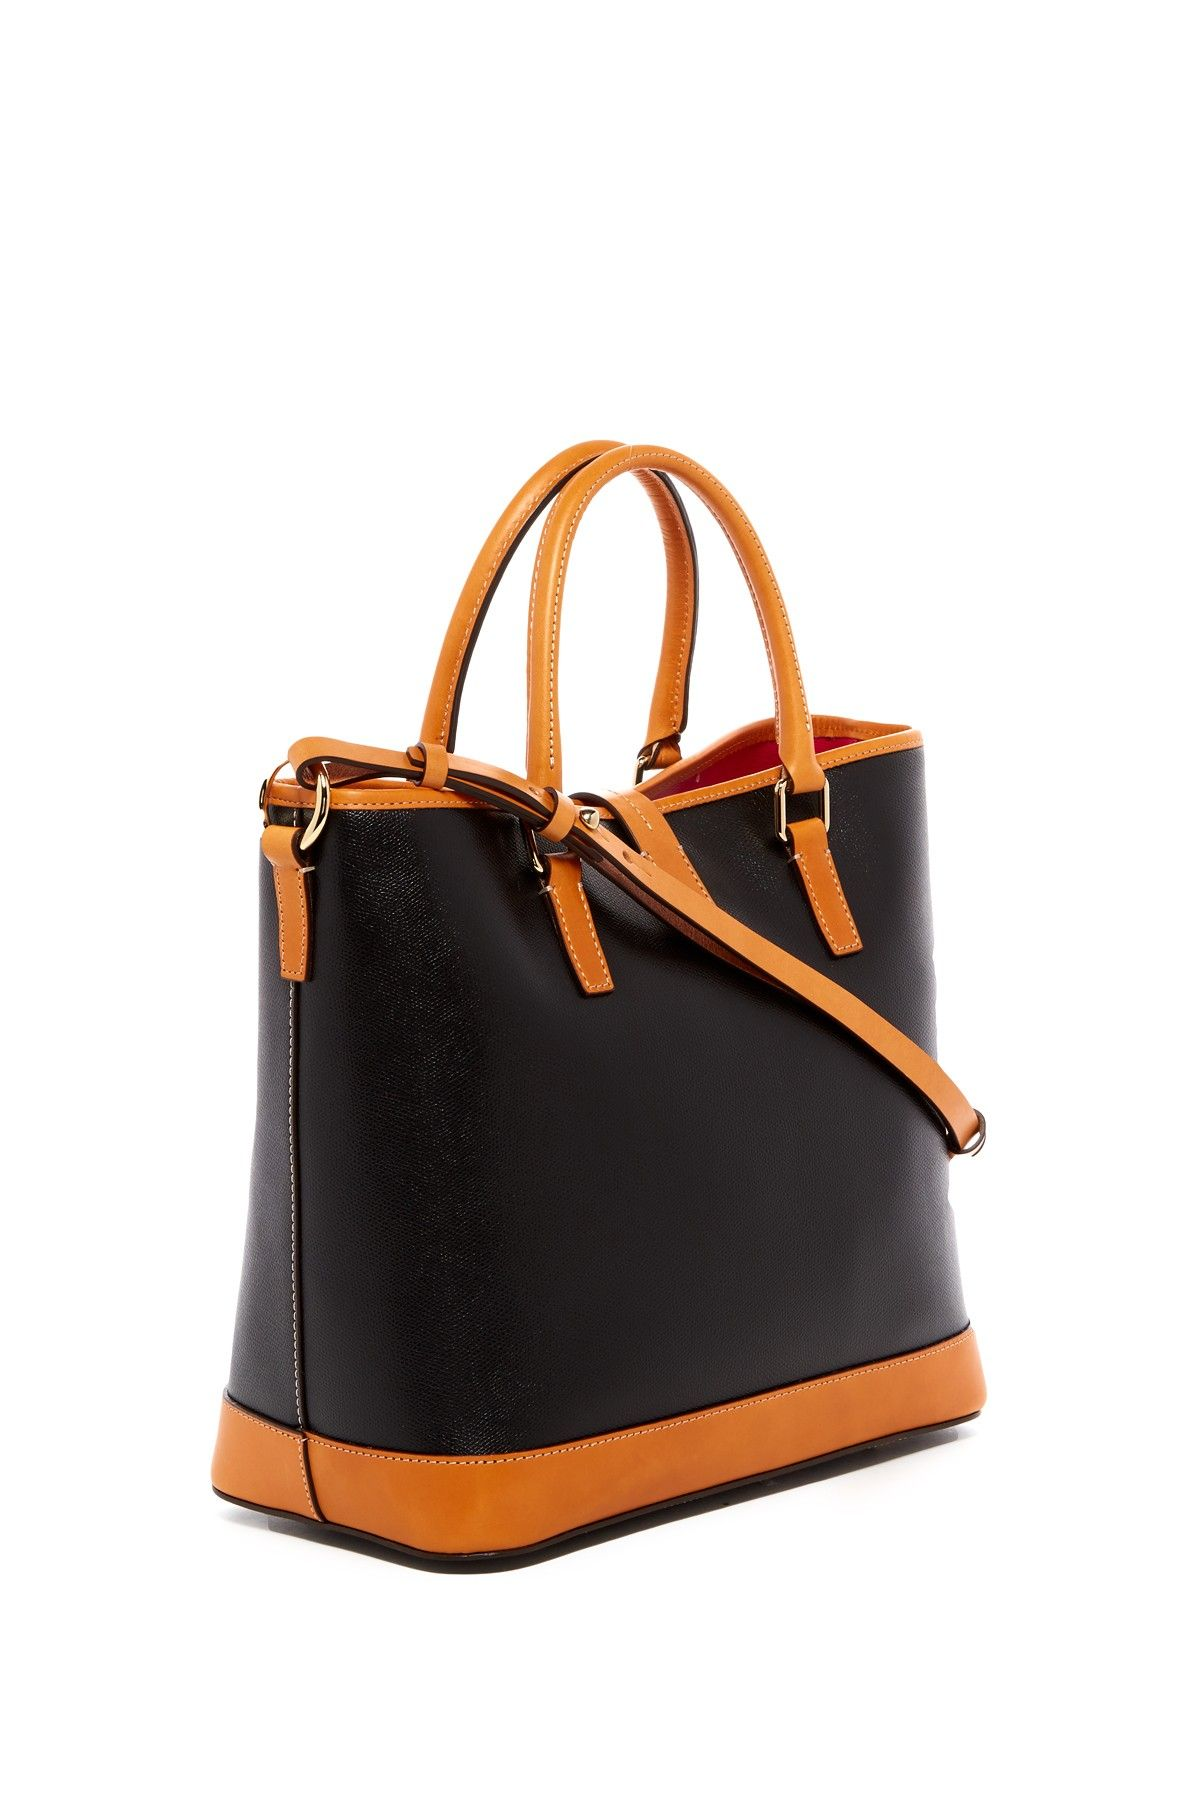 Dooney Bourke Perry Leather Tote At Nordstrom Rack Free Shipping On Orders Over